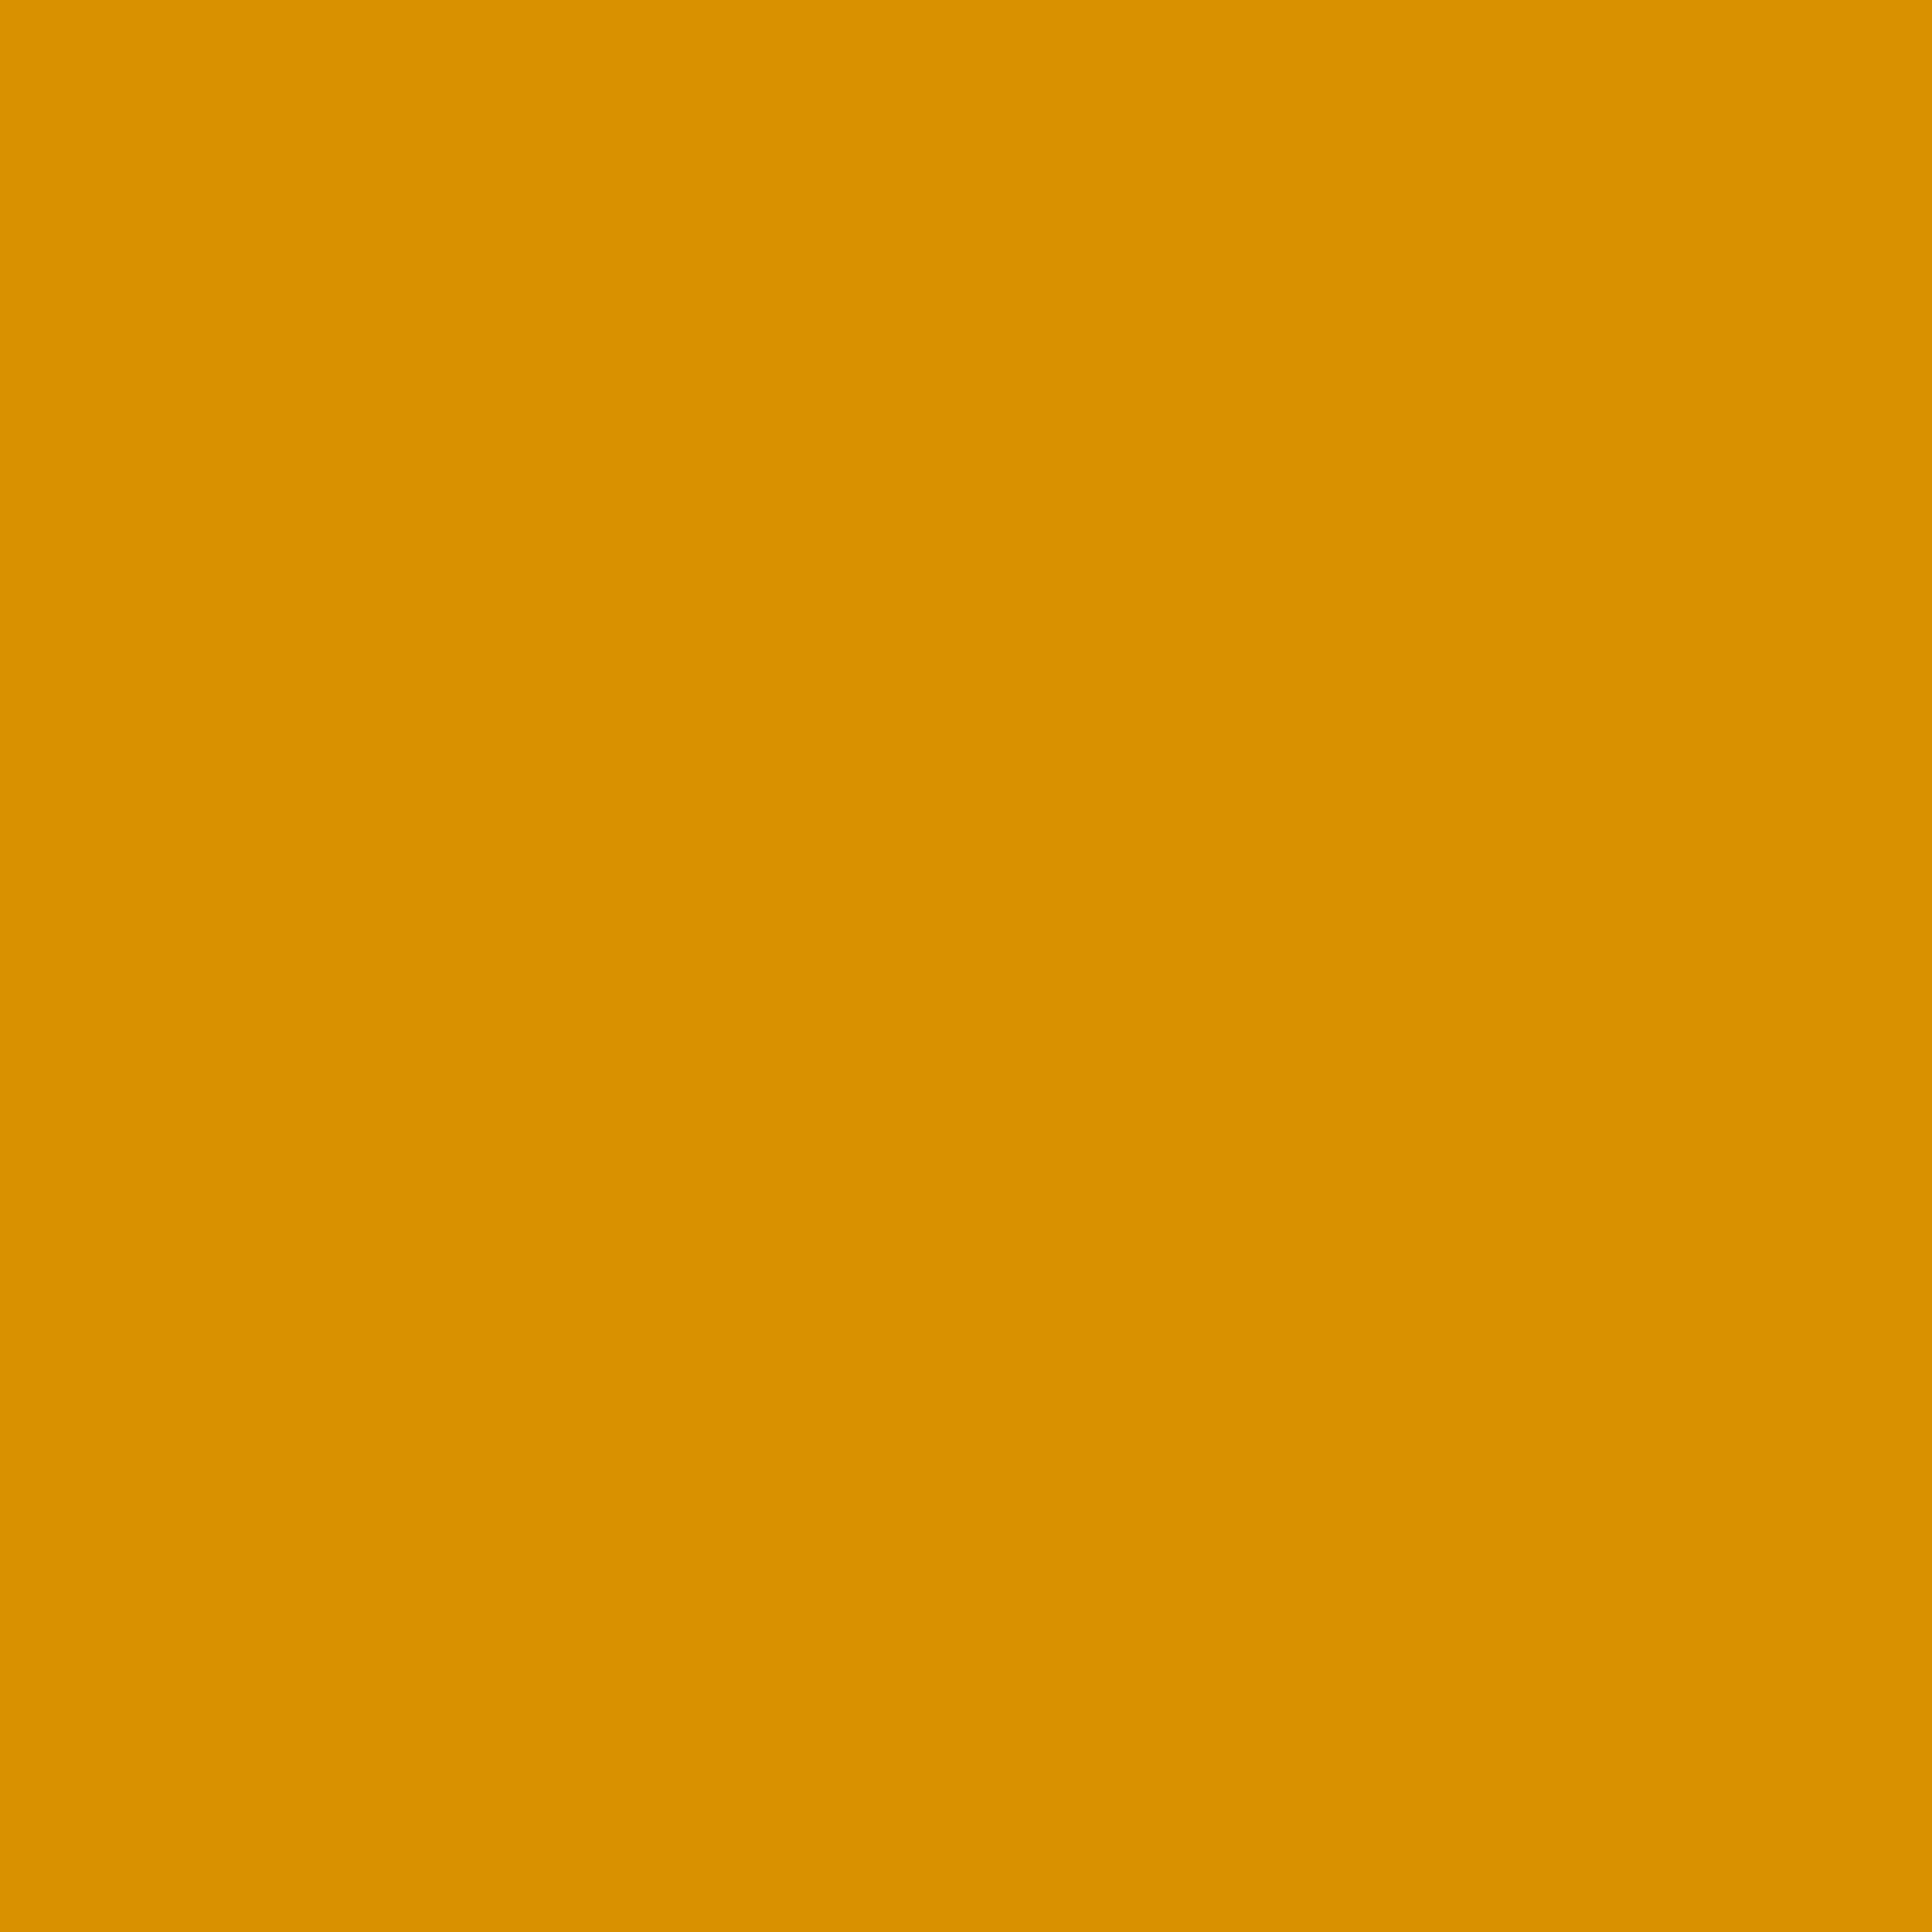 2732x2732 Harvest Gold Solid Color Background